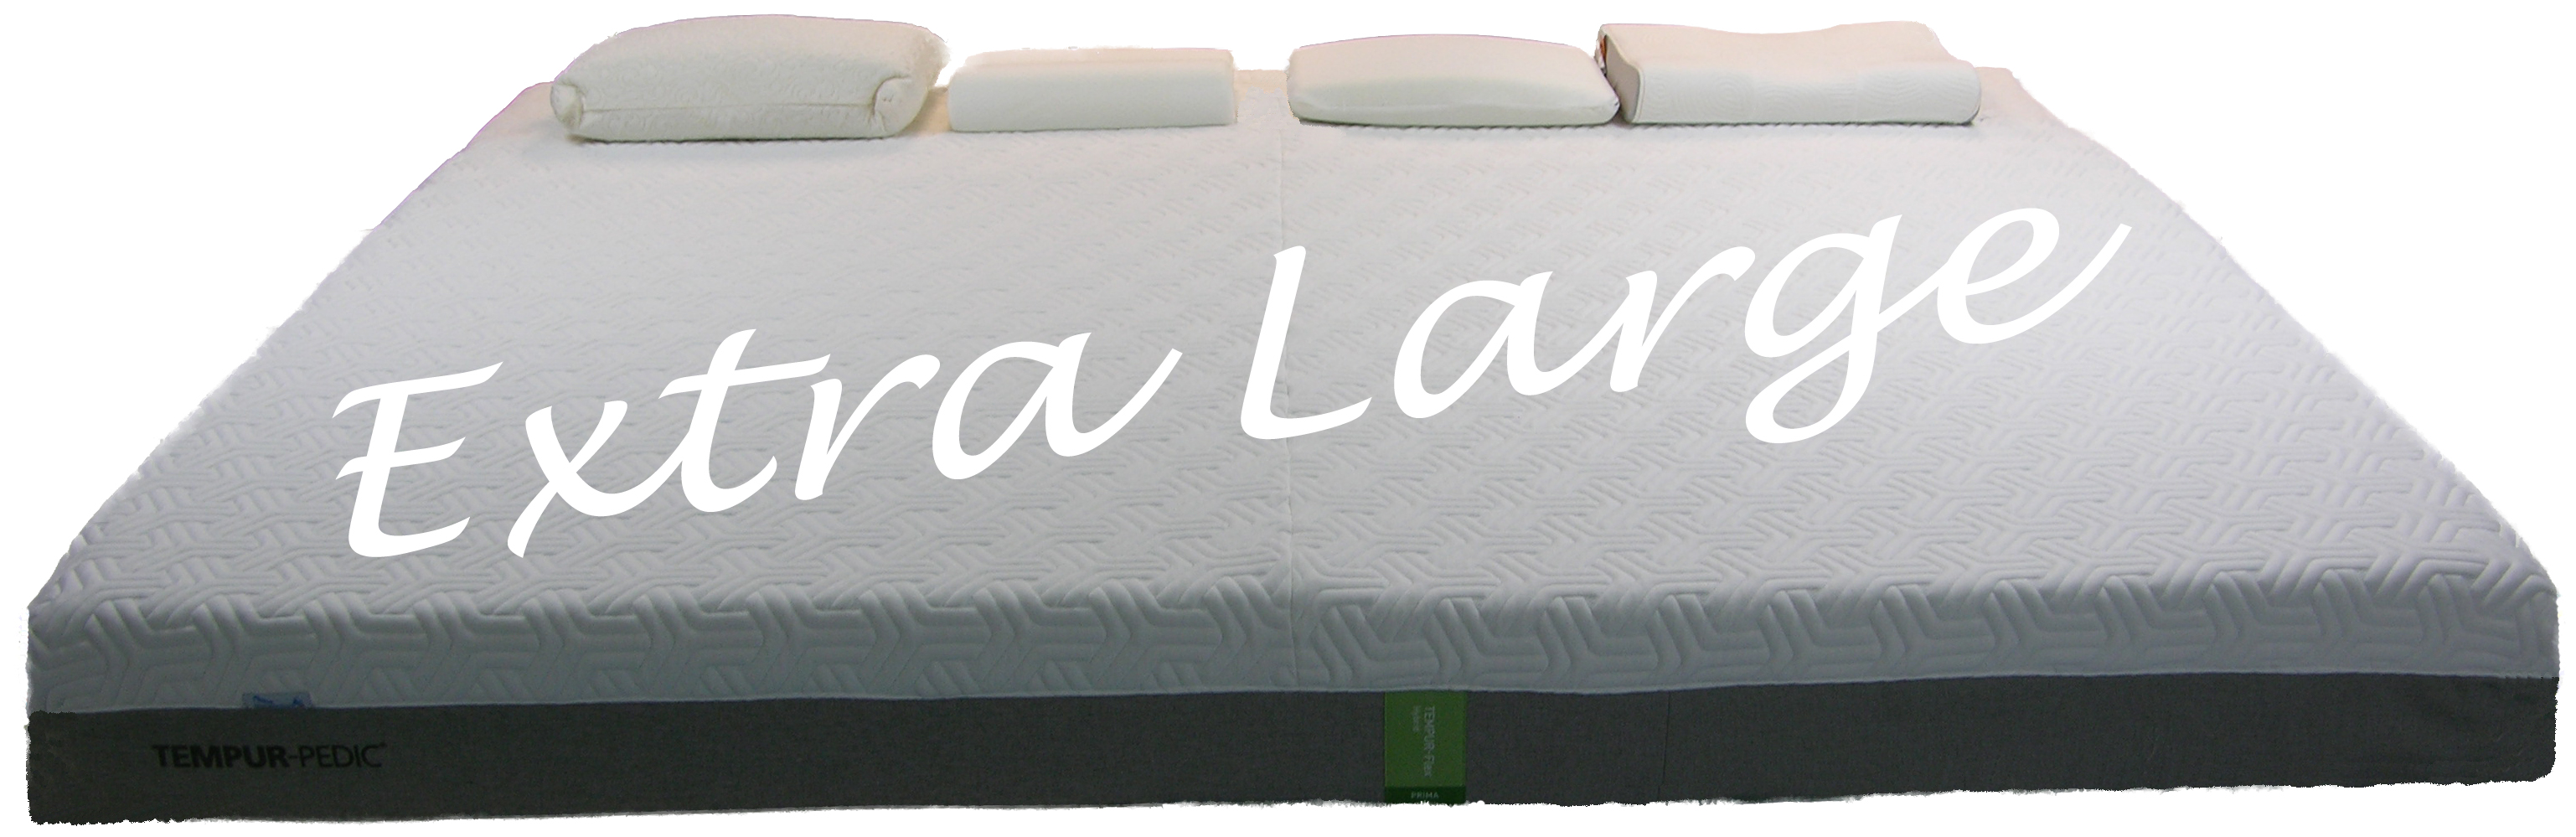 Extra Large Mattress custom made from Tempur-Pedic mattresses